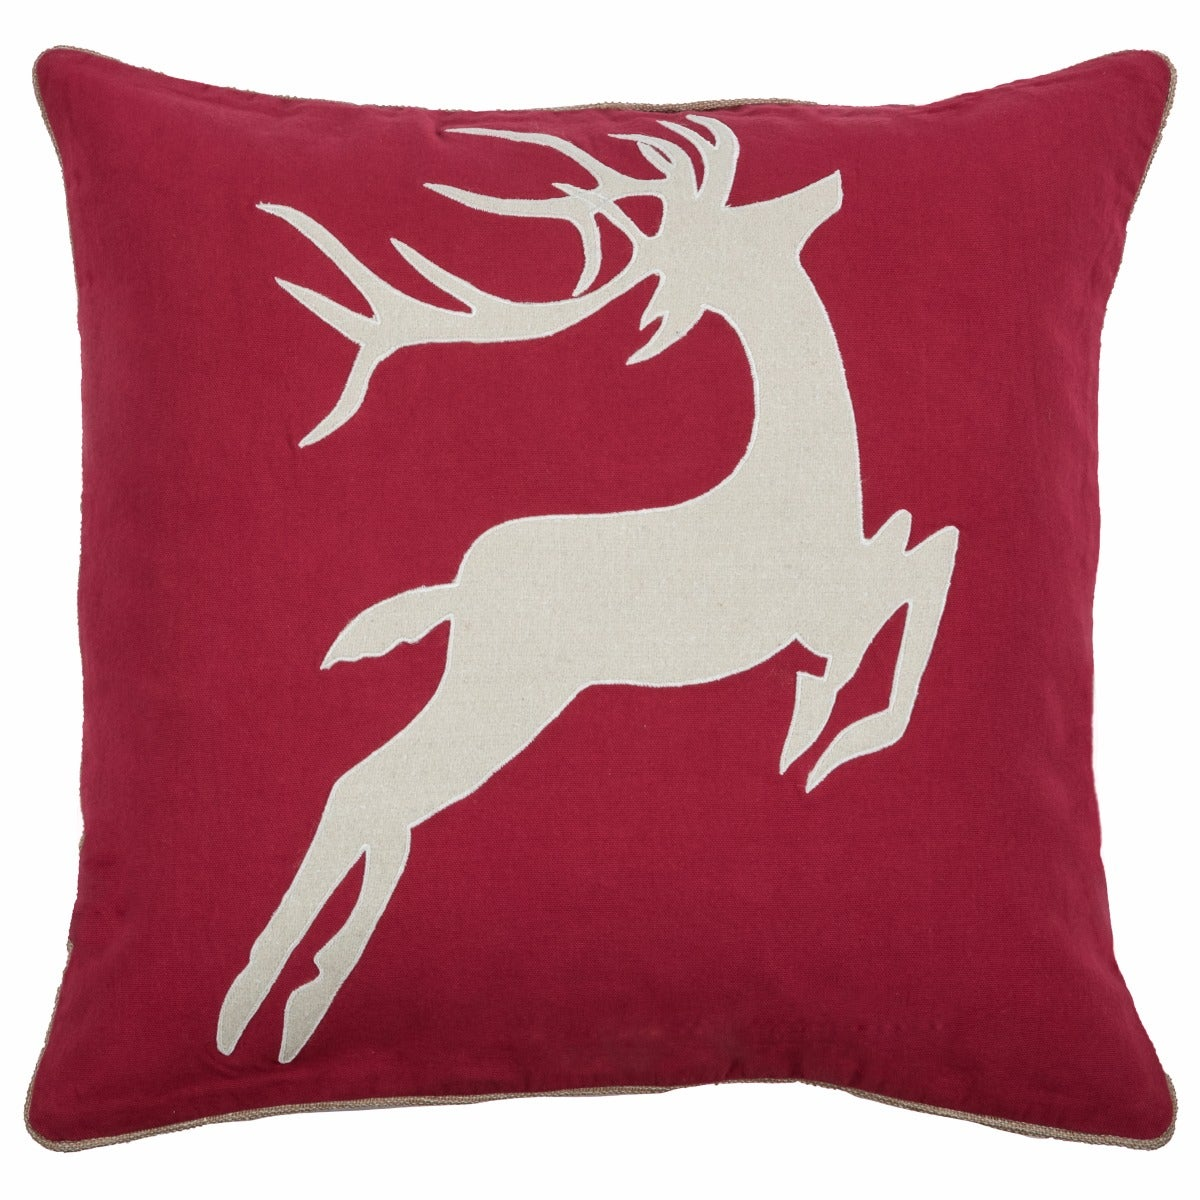 Rudolph Red Pillow